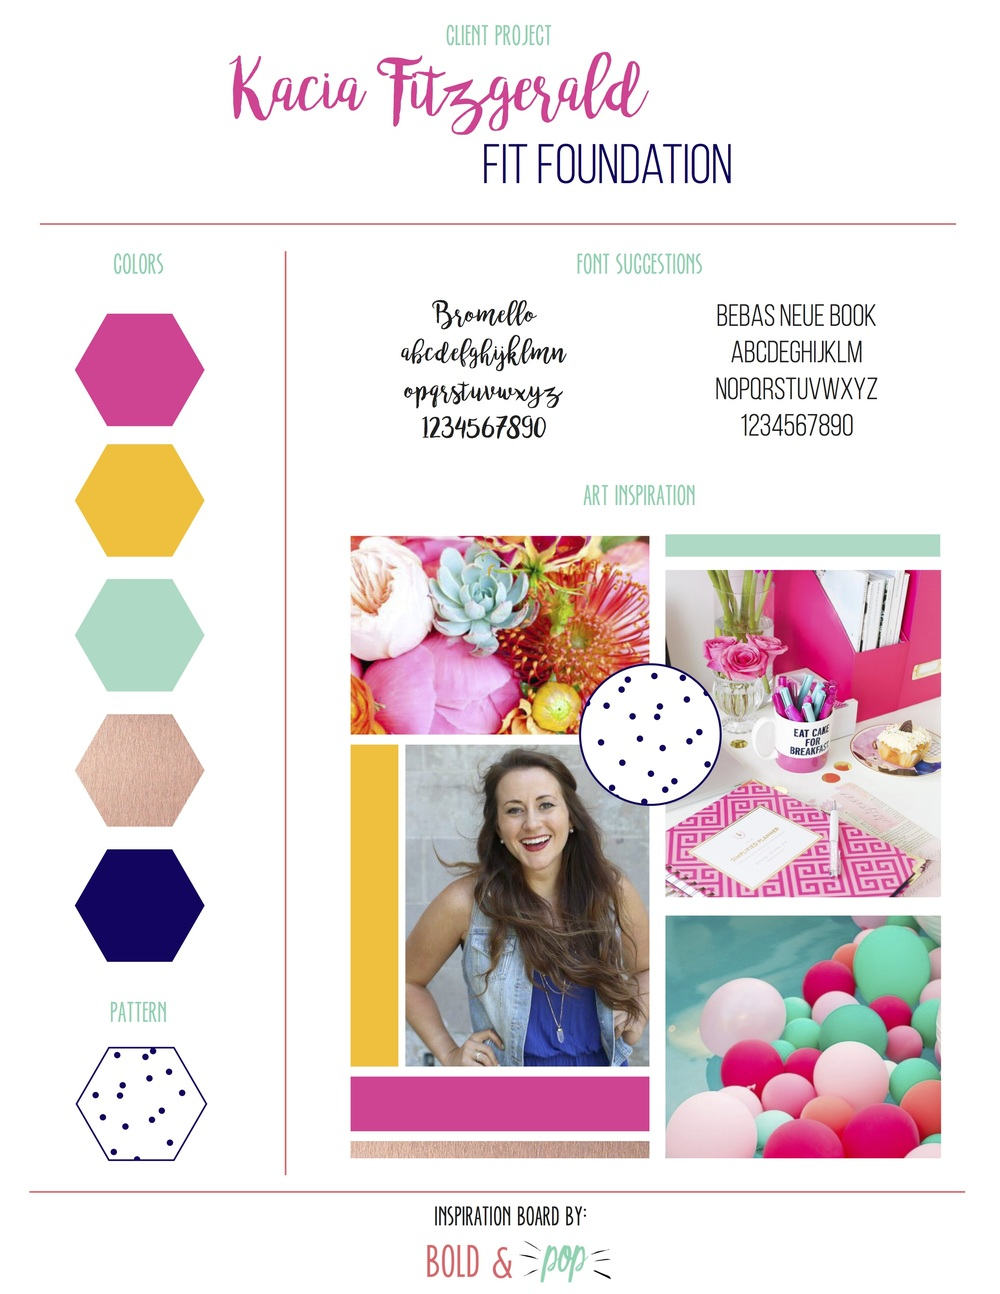 Bold & Pop : Fit Foundation Branding & Website Design